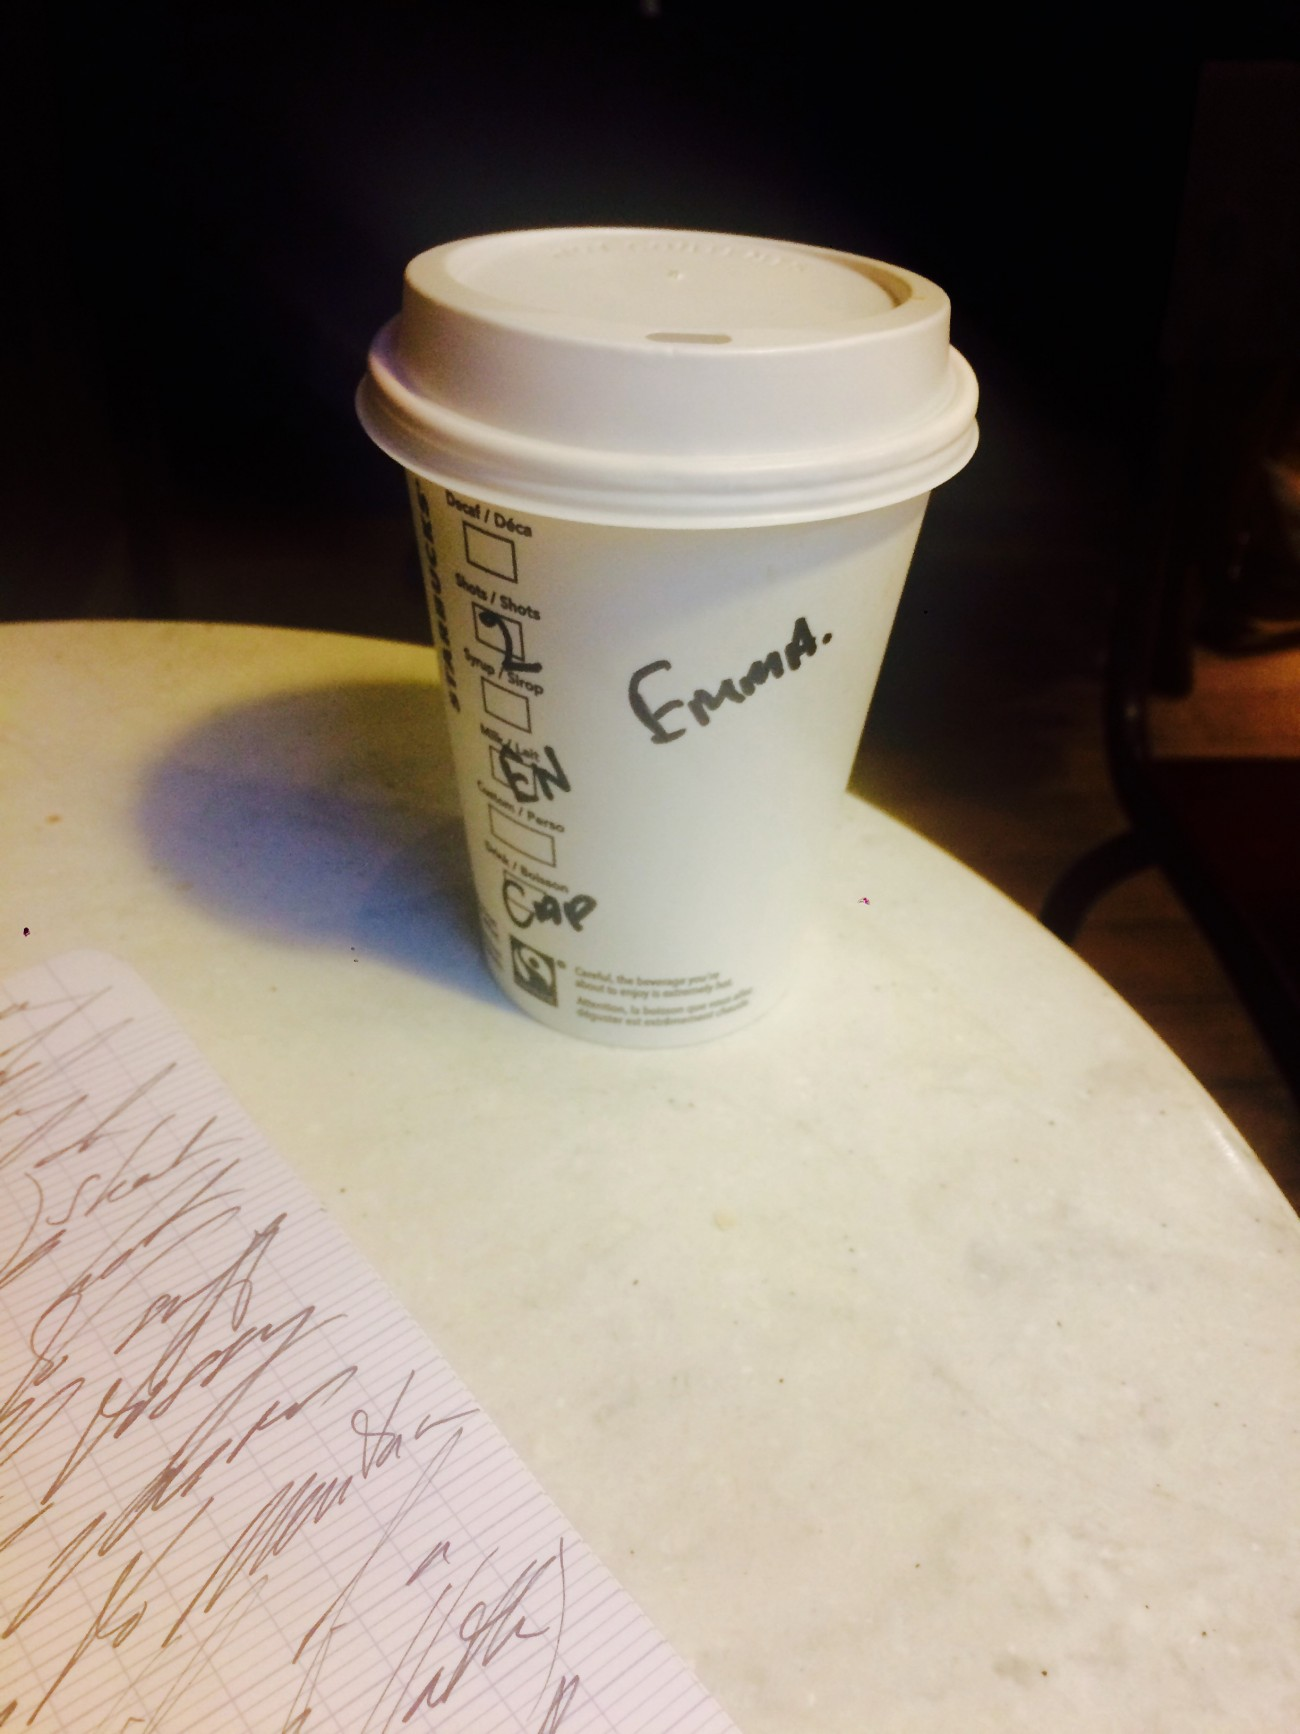 Vanessa Place and Steve Giasson. InvisiblePerformance n° 109 (To put one's ego aside: To go by a false name at Starbucks). Performer : Vanessa Place. Photographer : Vanessa Place. 31 march 2016.